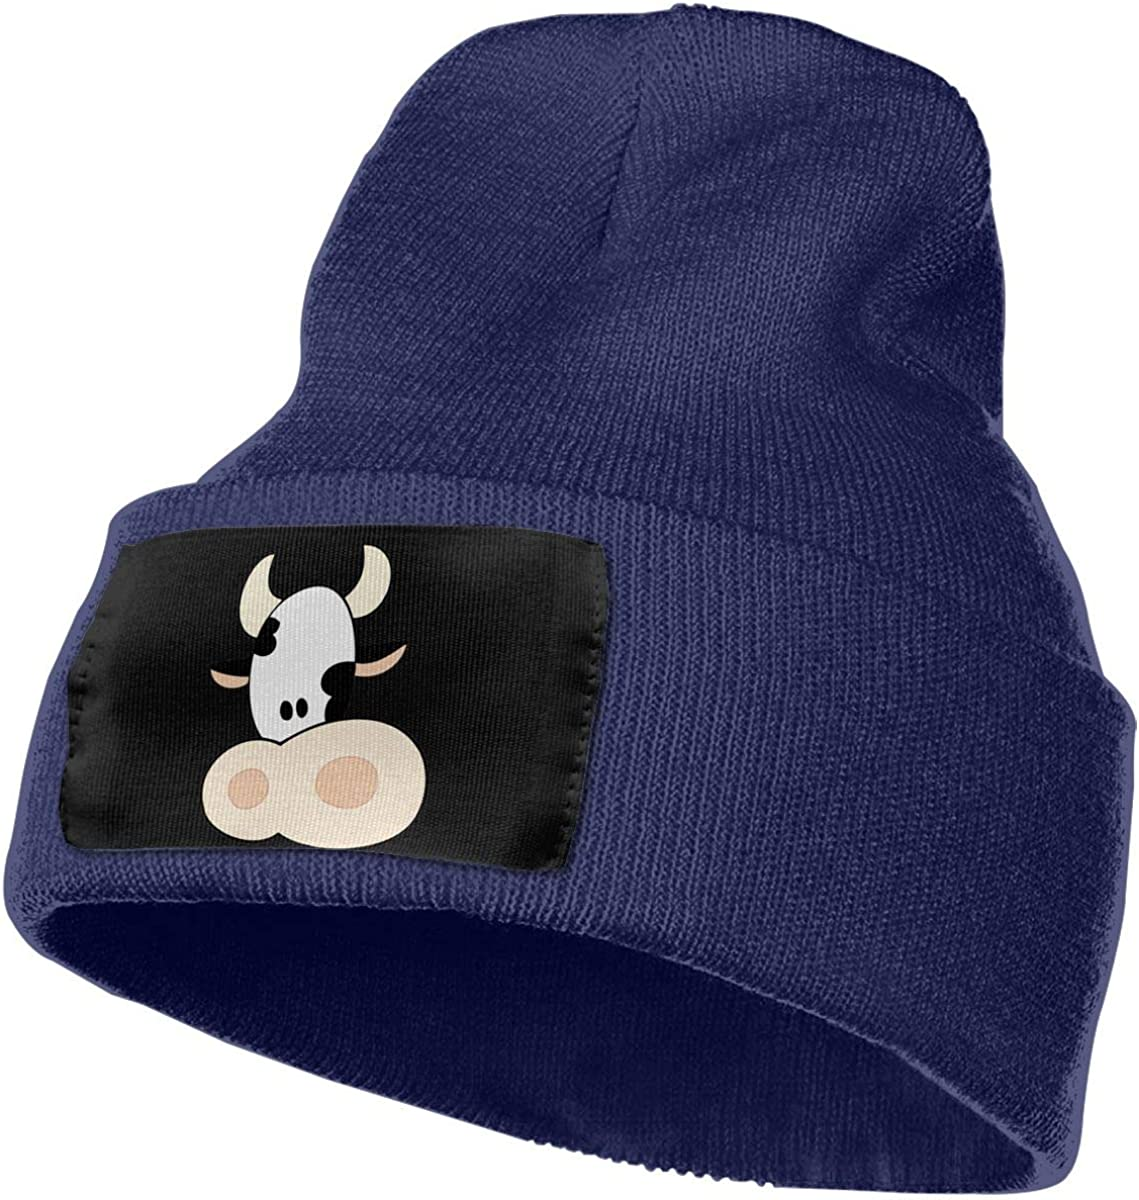 Funny Cow Face Original Skull Beanie Mens and Womens 100/% Acrylic Knitting Hat Cap